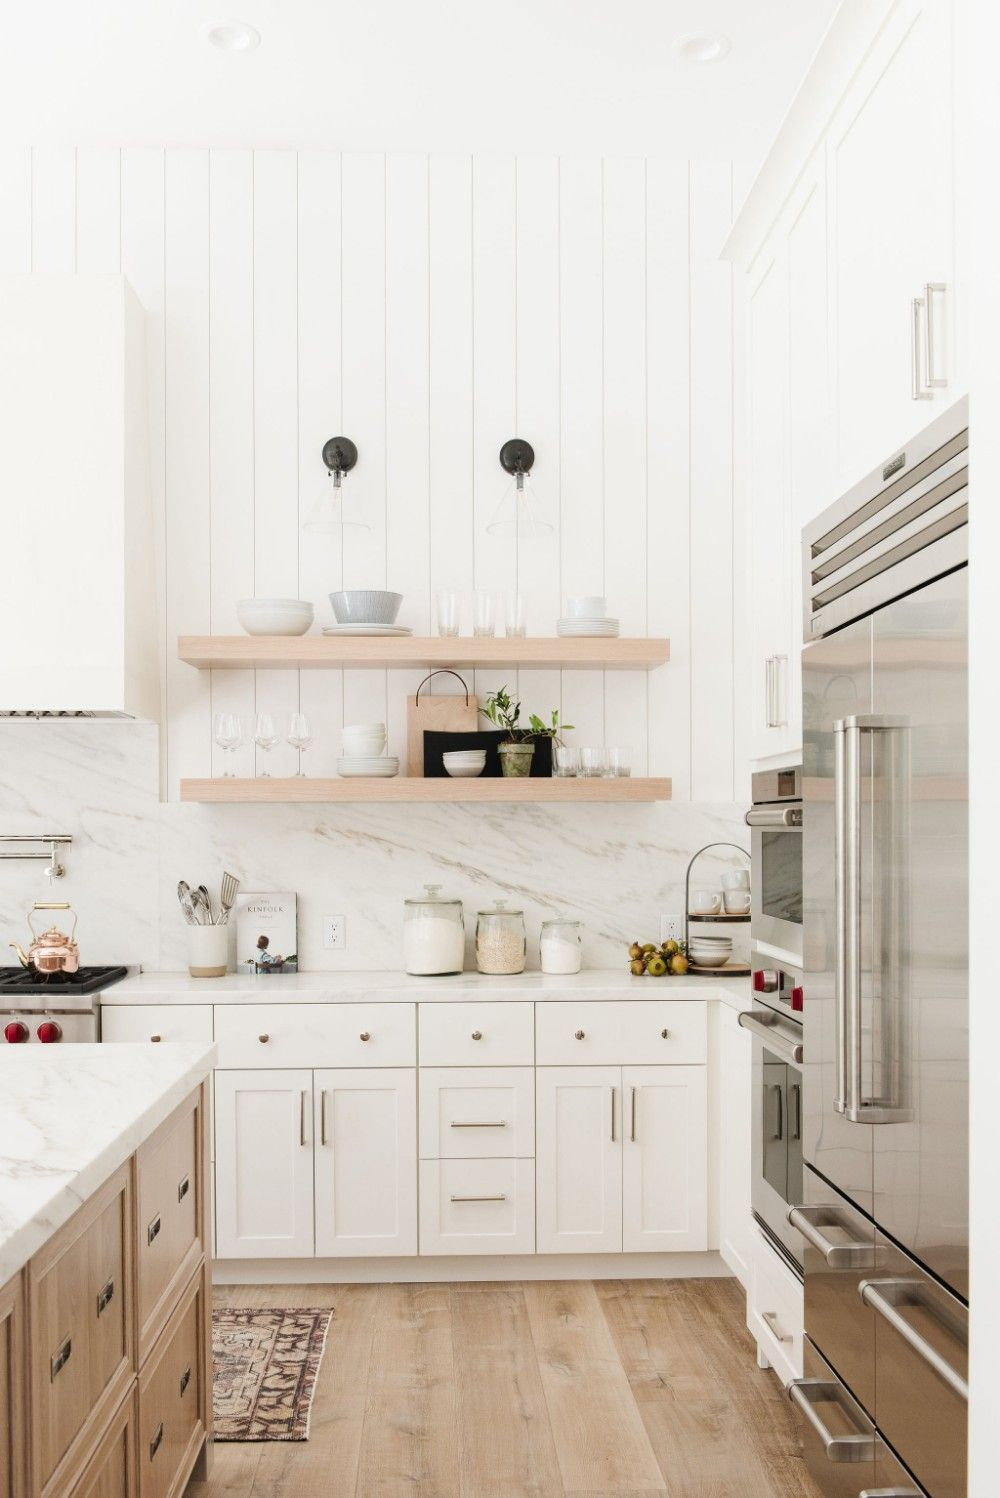 modern lake house kitchen nook home decor kitchen interior design kitchen kitchen interior on kitchen cabinets vertical lines id=13509